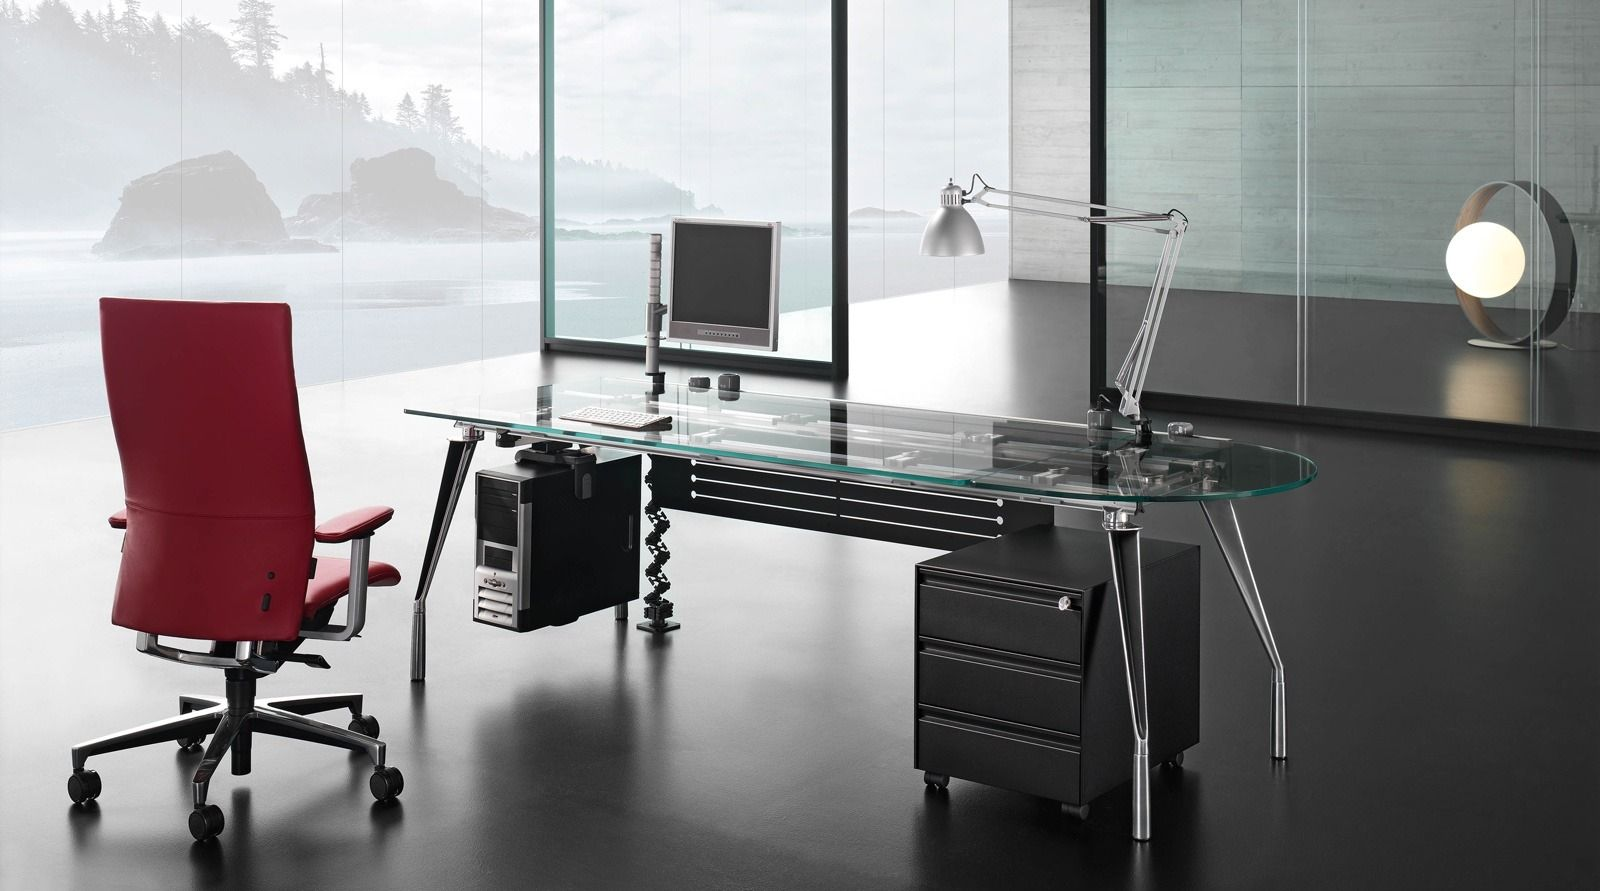 google image result for httpimgarchiexpocomimagesaephotog  - google image result for httpimgarchiexpocomimagesaephotog contemporaryexecutiveglassofficedesk  office designideas